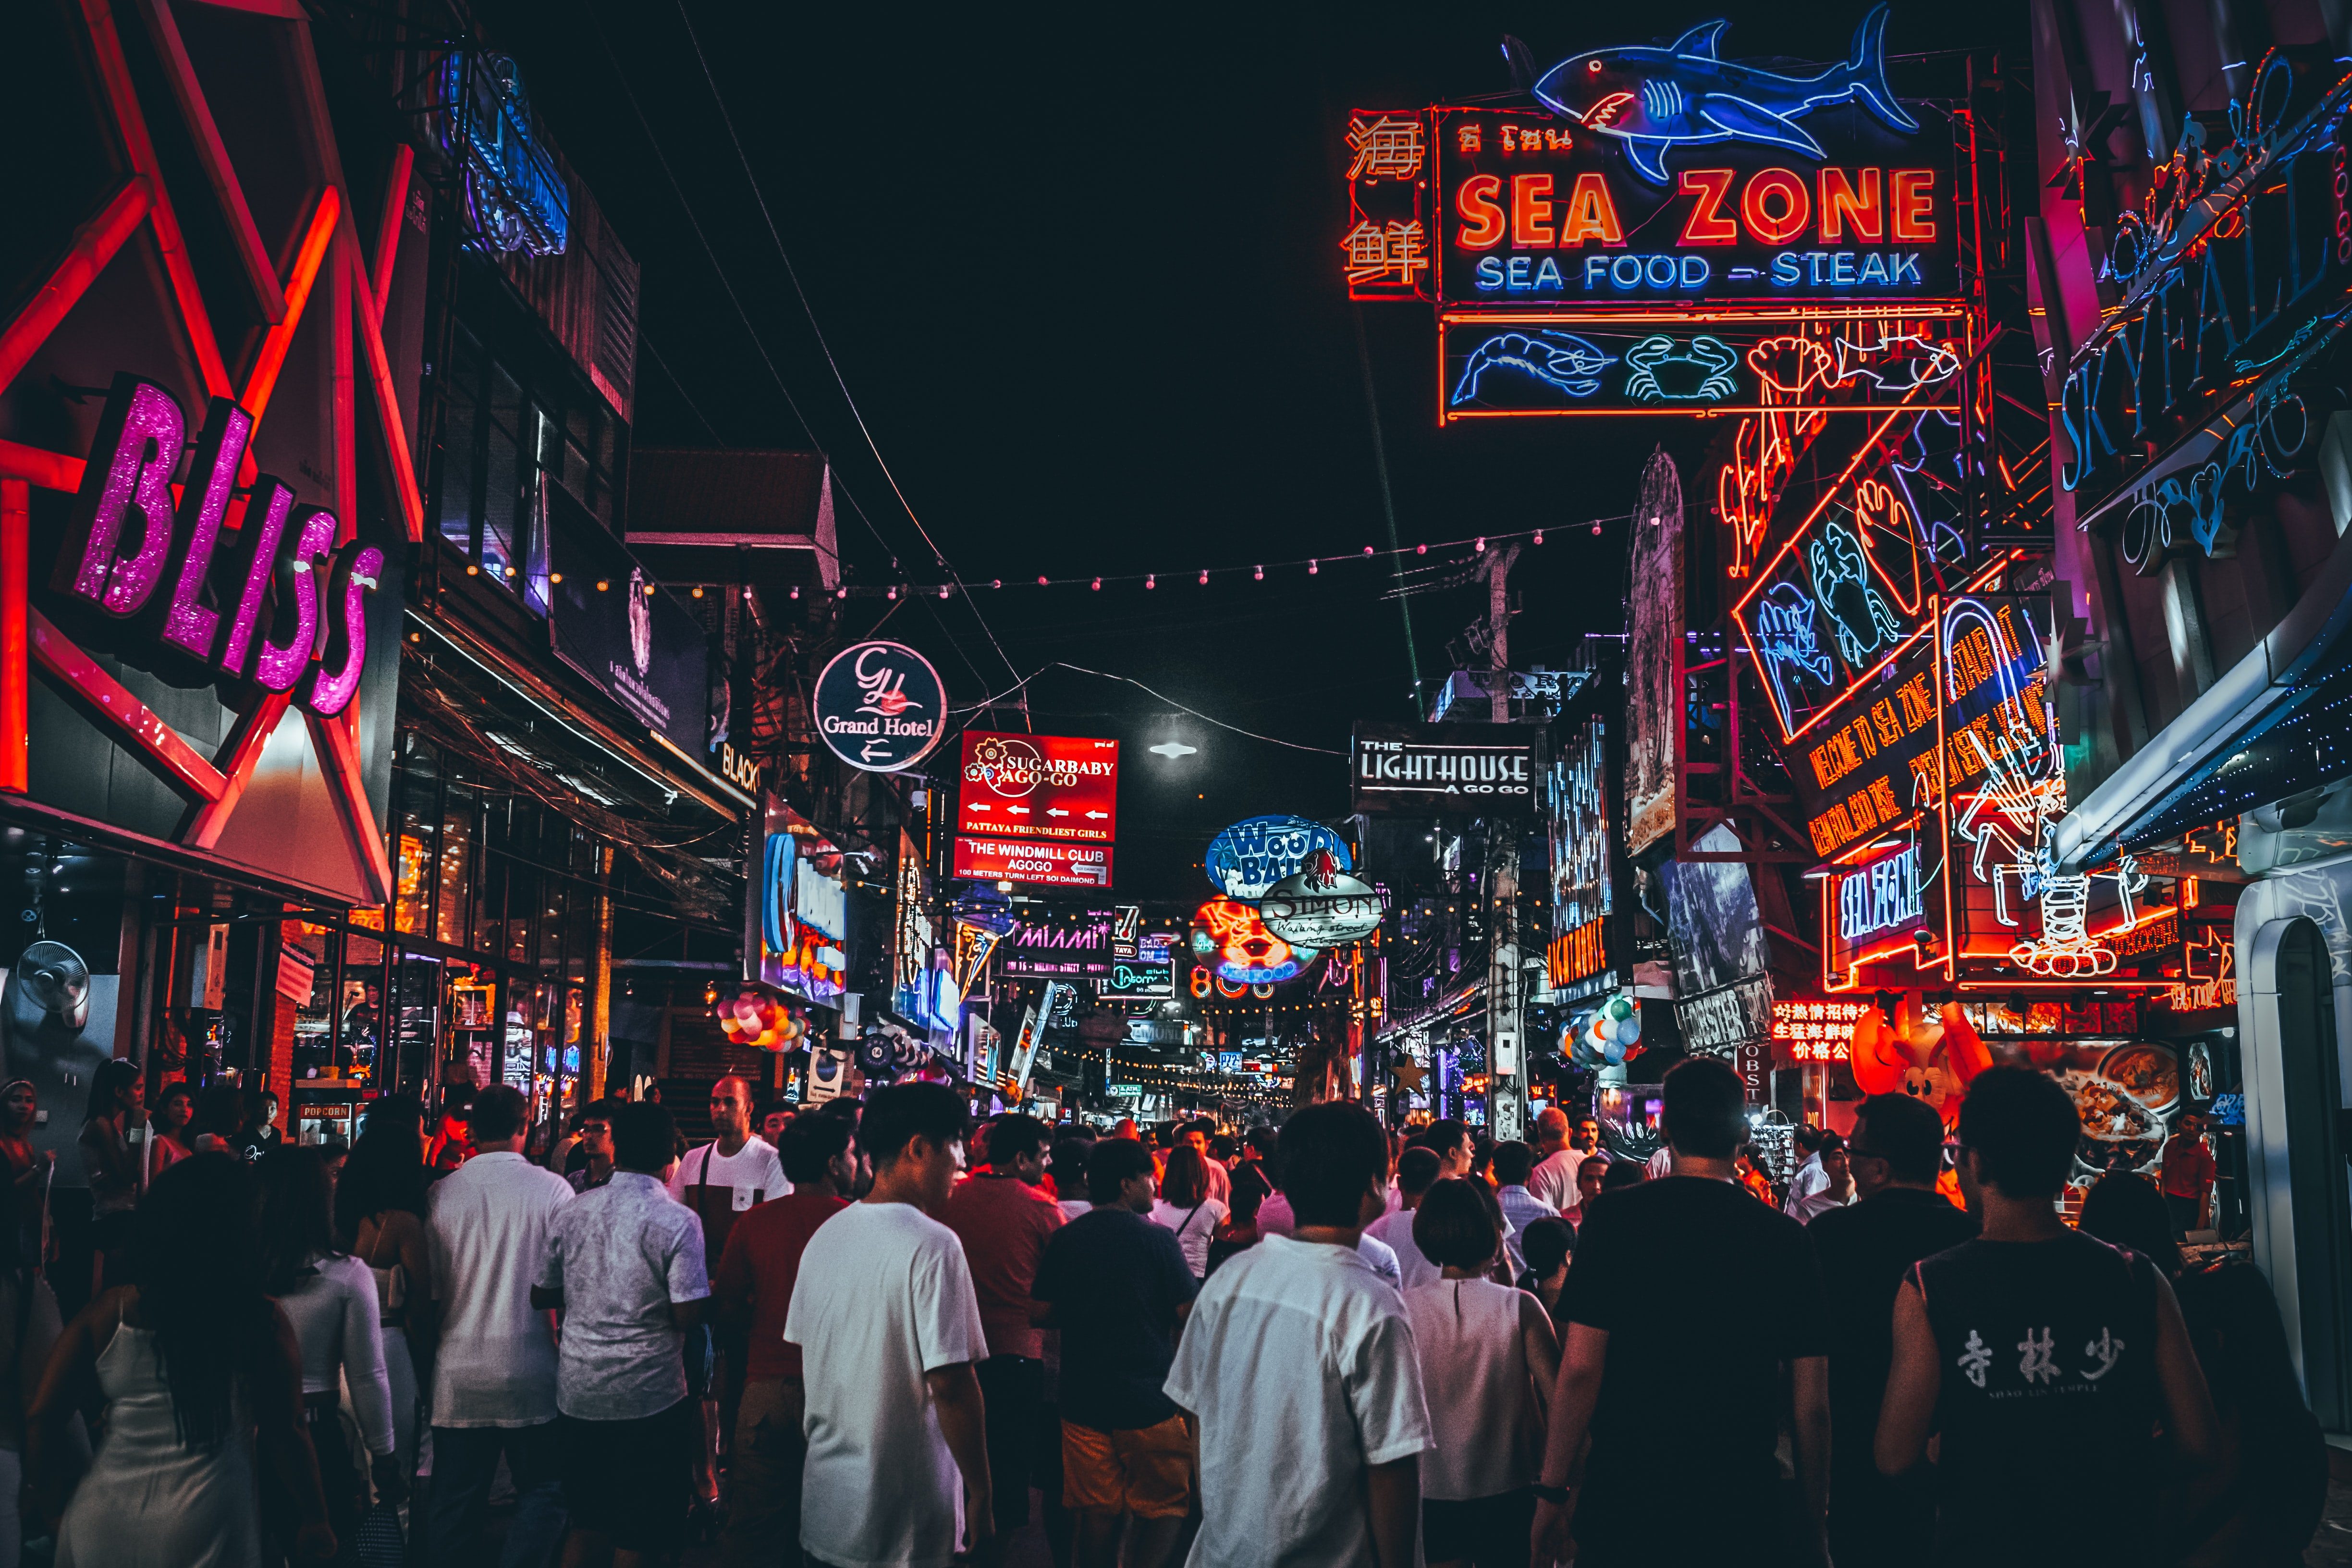 A street full of small shops and restaurants with bright LED signs.